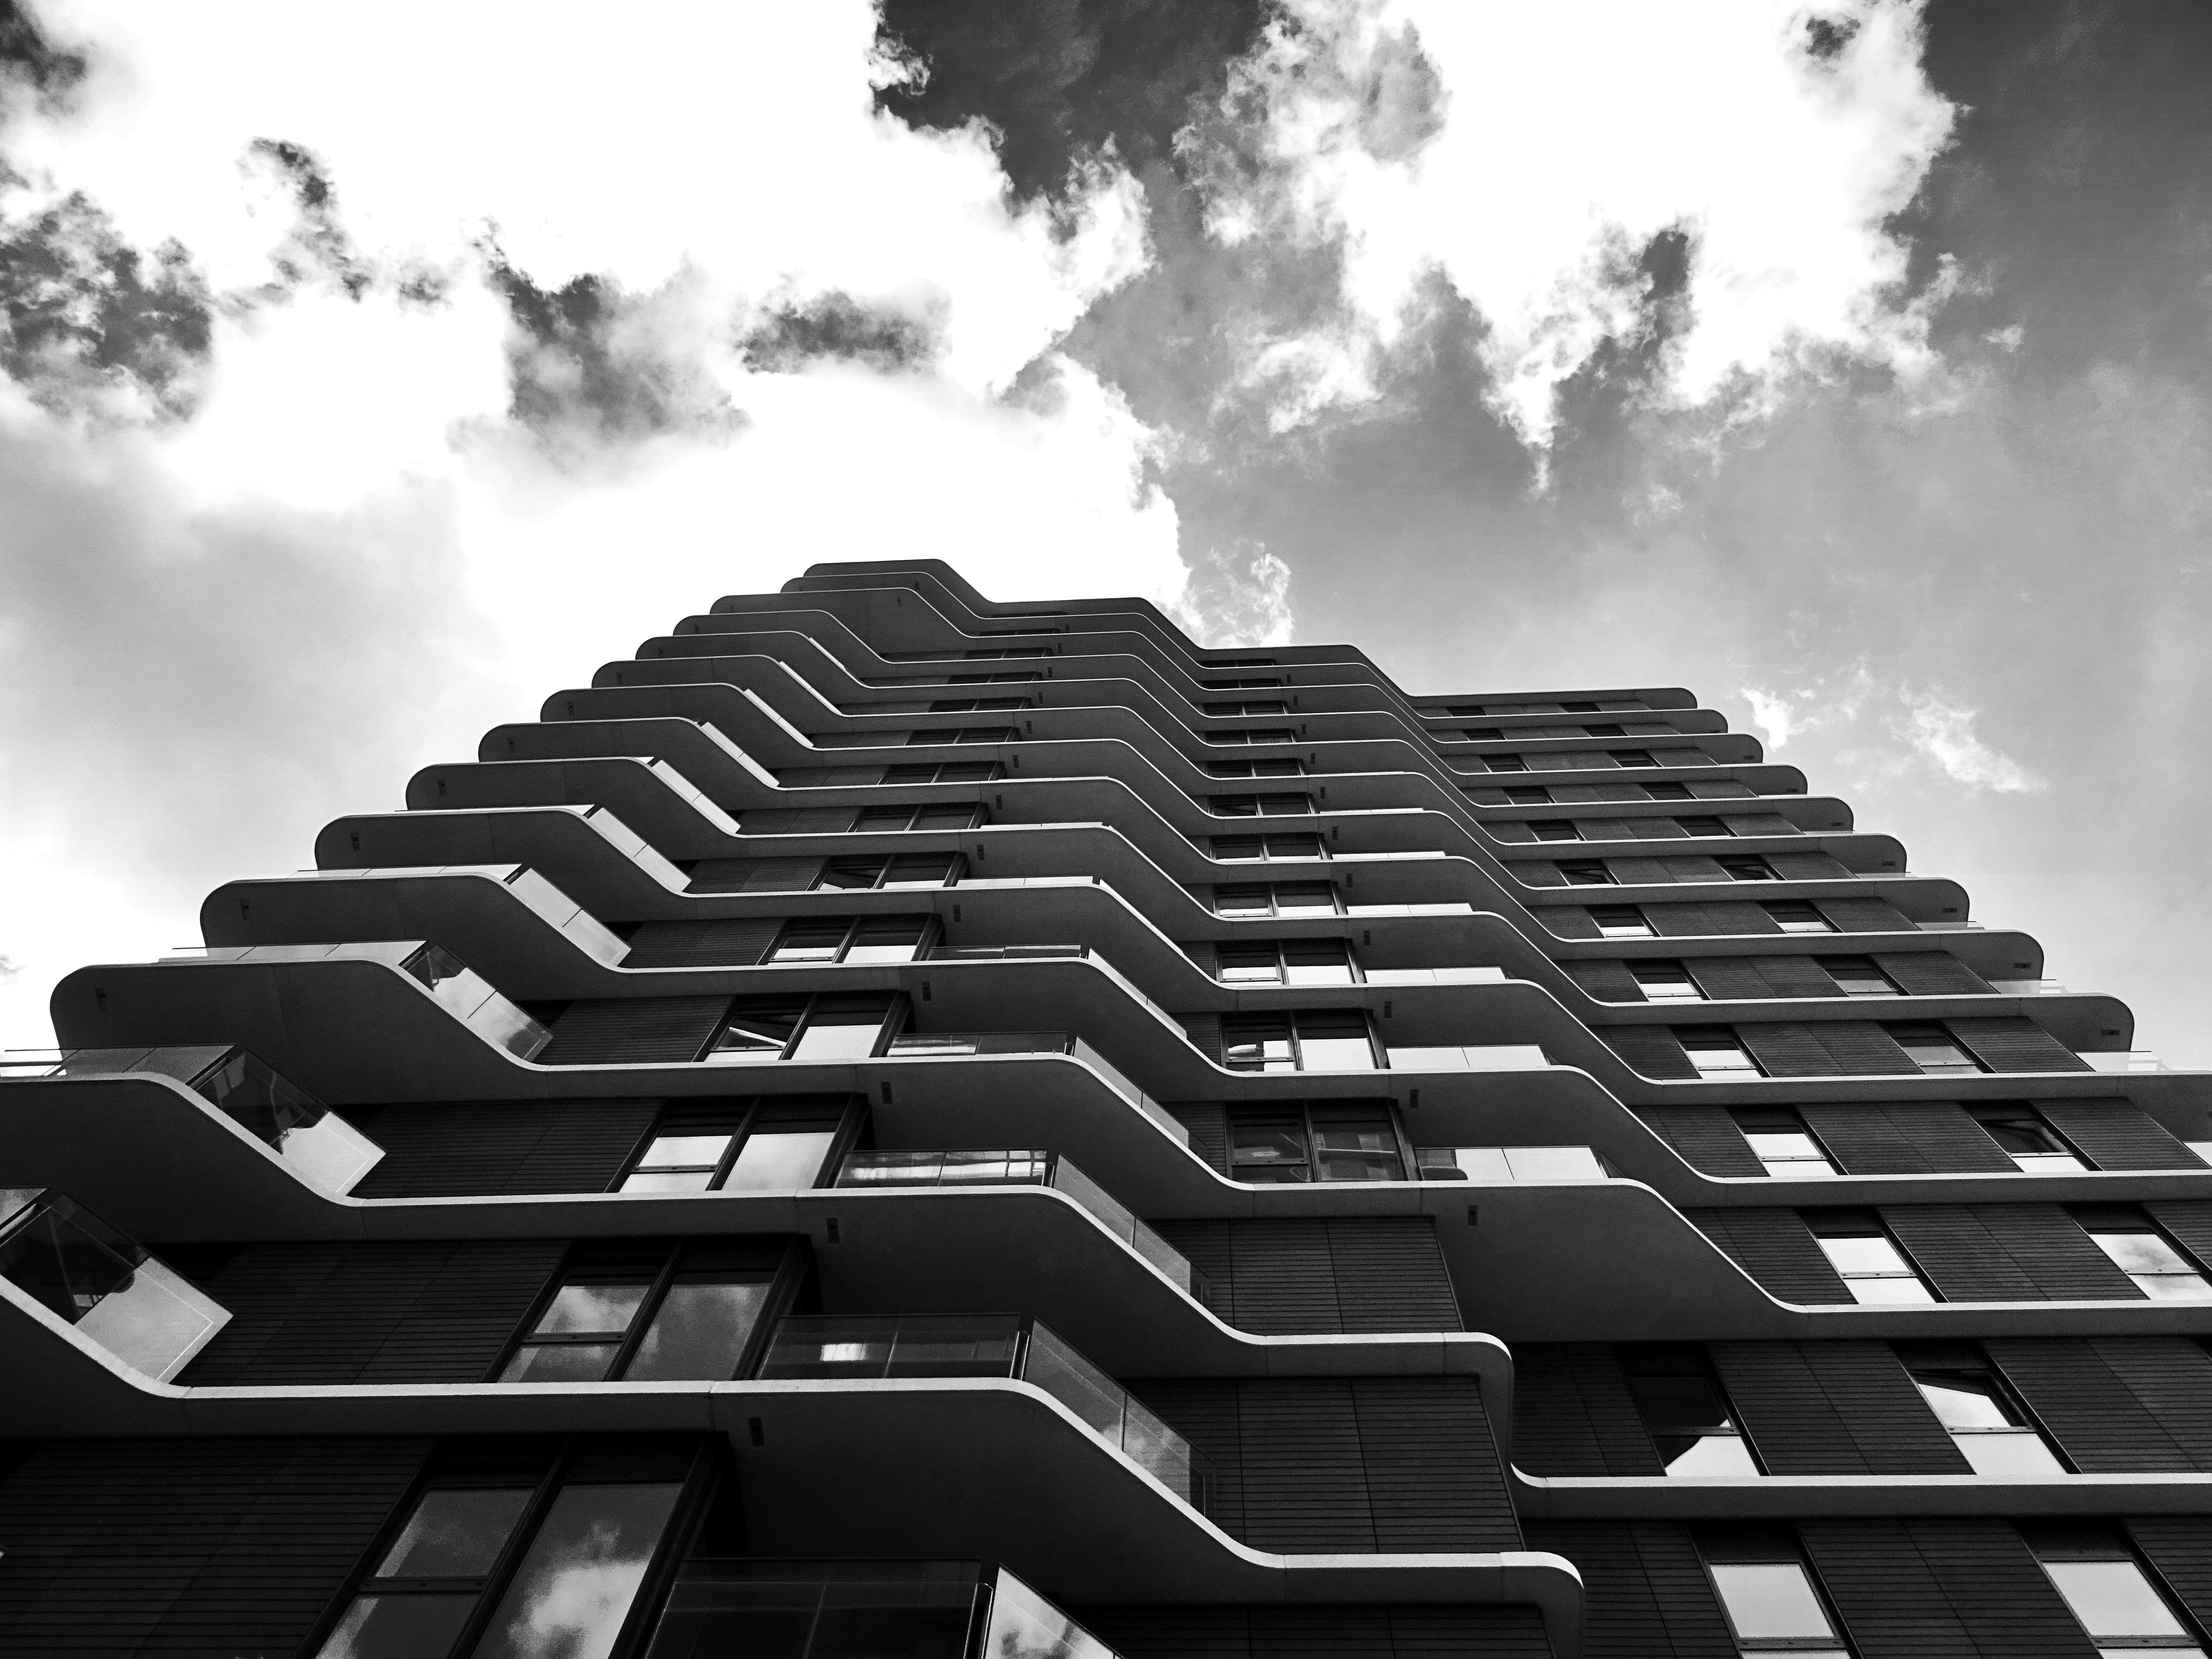 Free stock photo of black-and-white, building, architecture, skyscraper